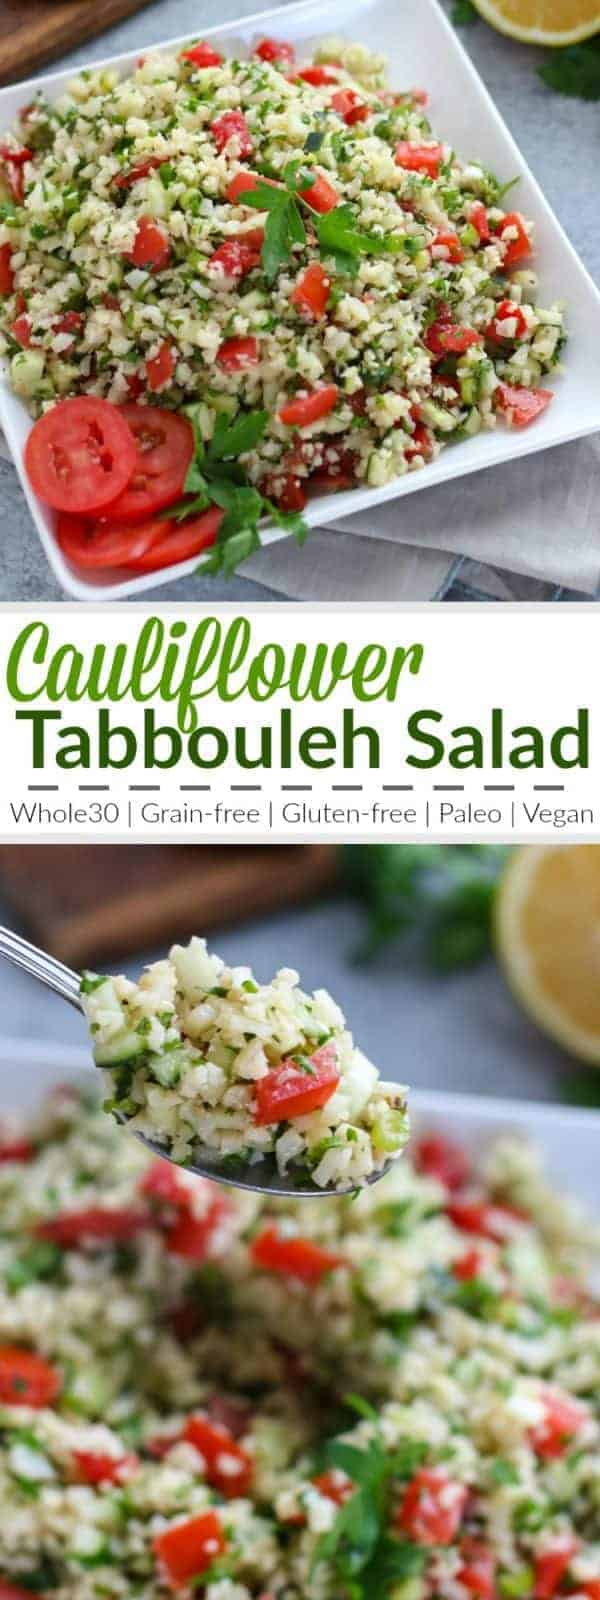 Cauliflower Tabbouleh Salad | A fresh grain-free take on a traditional Middle Eastern dish! We've replaced the bulgur wheat with lightly sauteed cauliflower 'rice' for a gluten-free and paleo-friendly side dish to serve with your favorite protein or share at your next potluck event. | Whole30 | Vegan | Gluten-free | https://therealfoodrds.com/cauliflower-tabbouleh-salad/